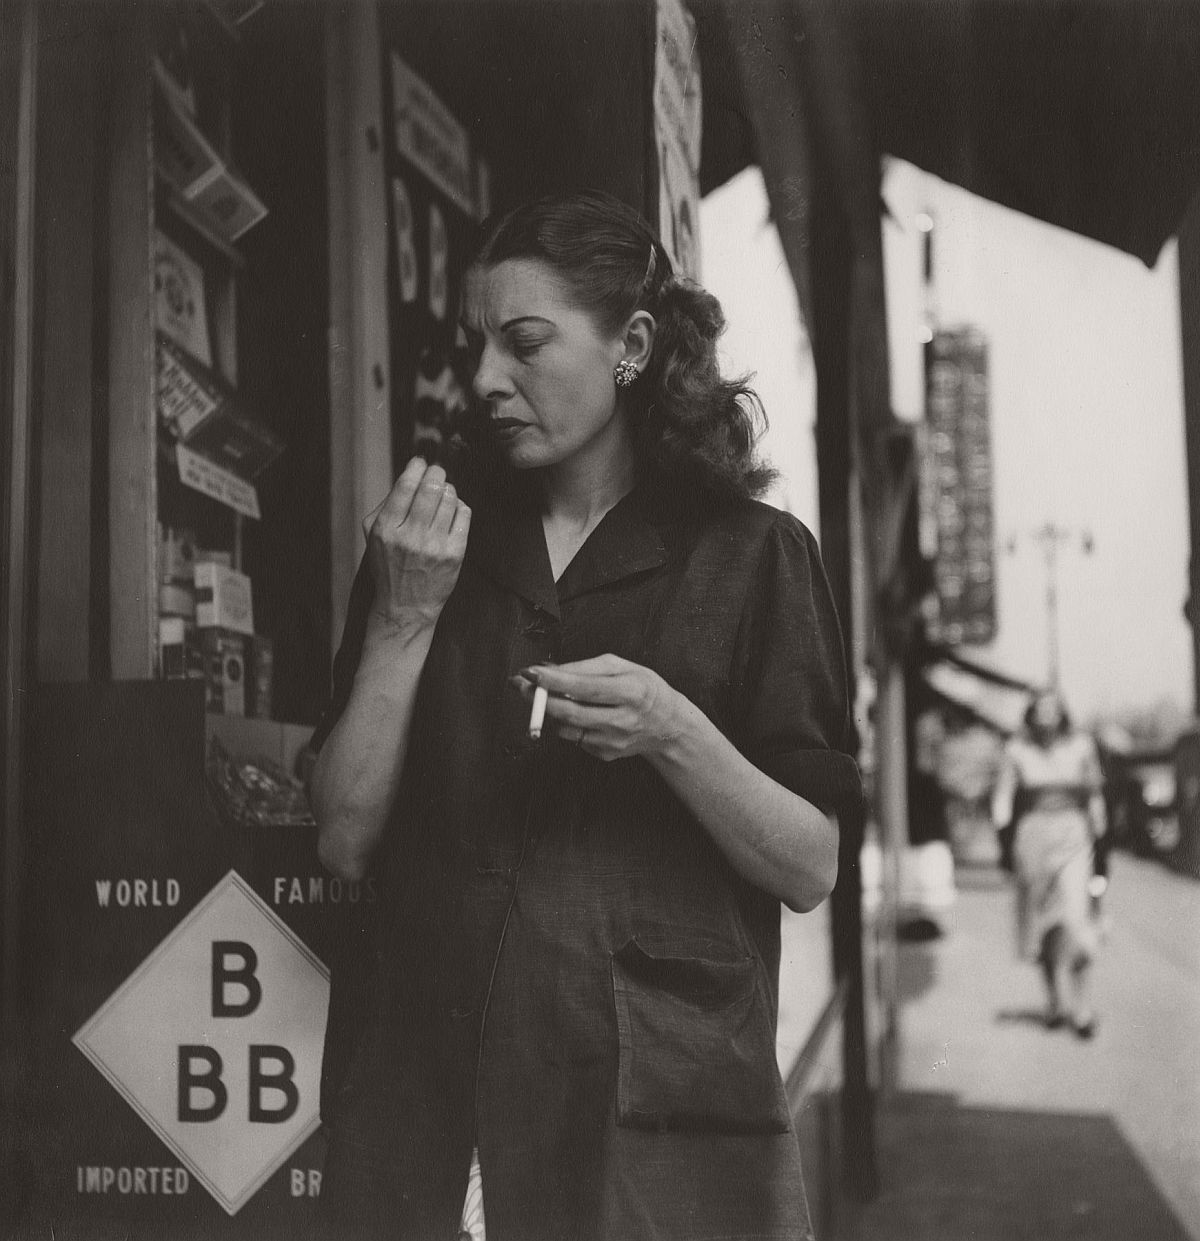 Woman Looking at Nails, 1948